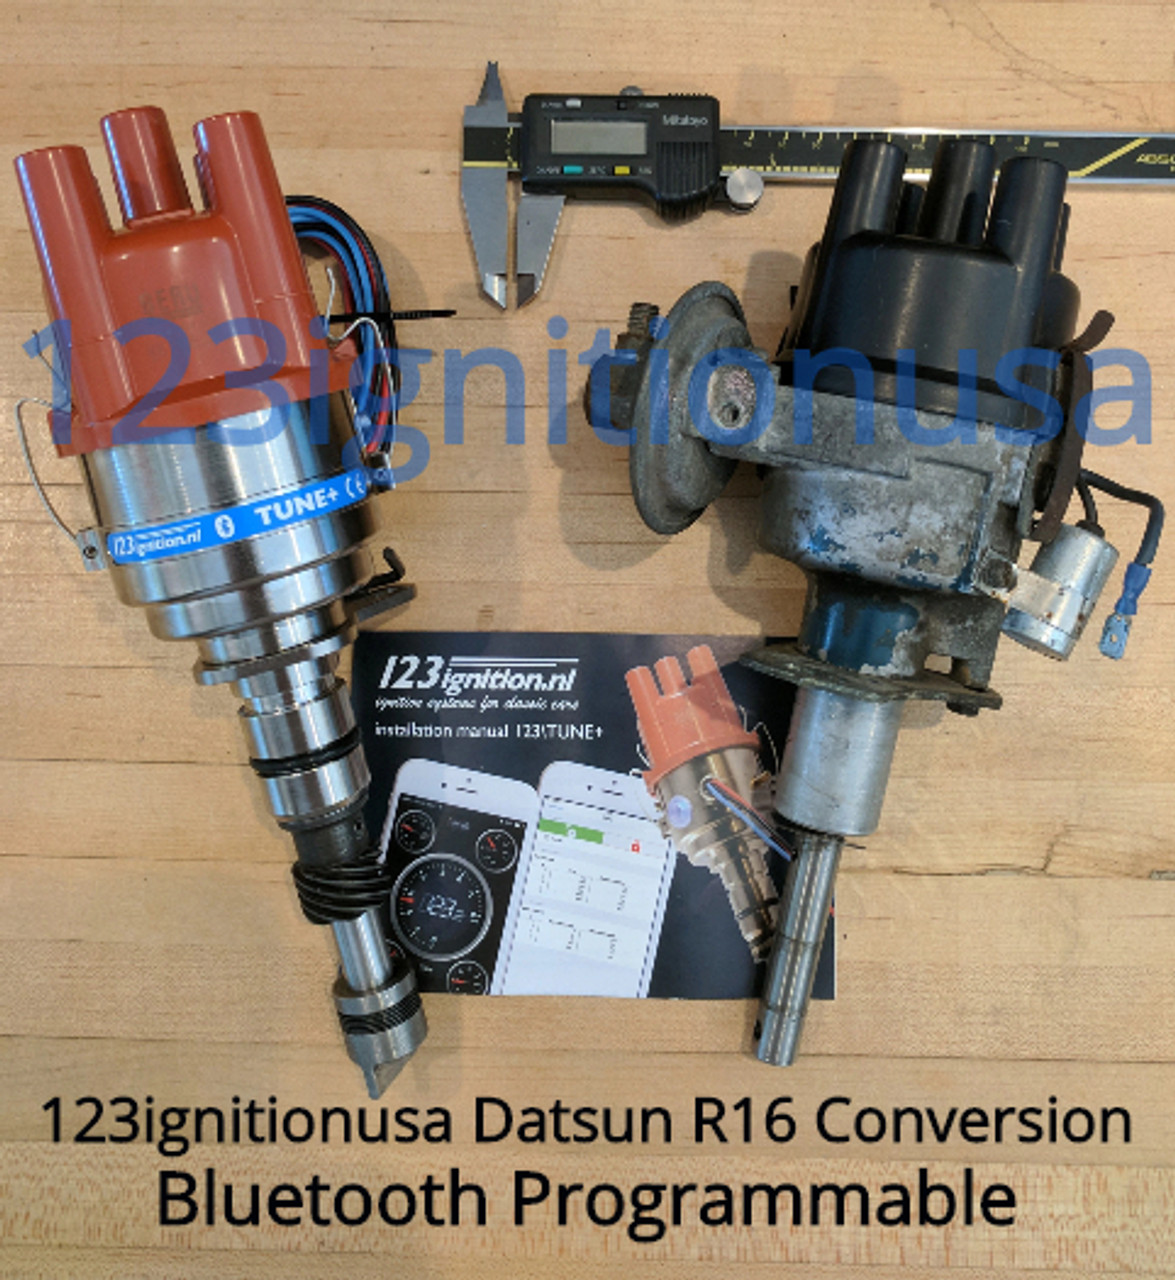 Bluetooth Datsun R16 Roadster R16 311,411,1600,2000,411SSS,U20,H20  L4 engine Programmable Bluetooth (Built to Order)($50 Refundable Core Charge) - No Refunds or cancellations